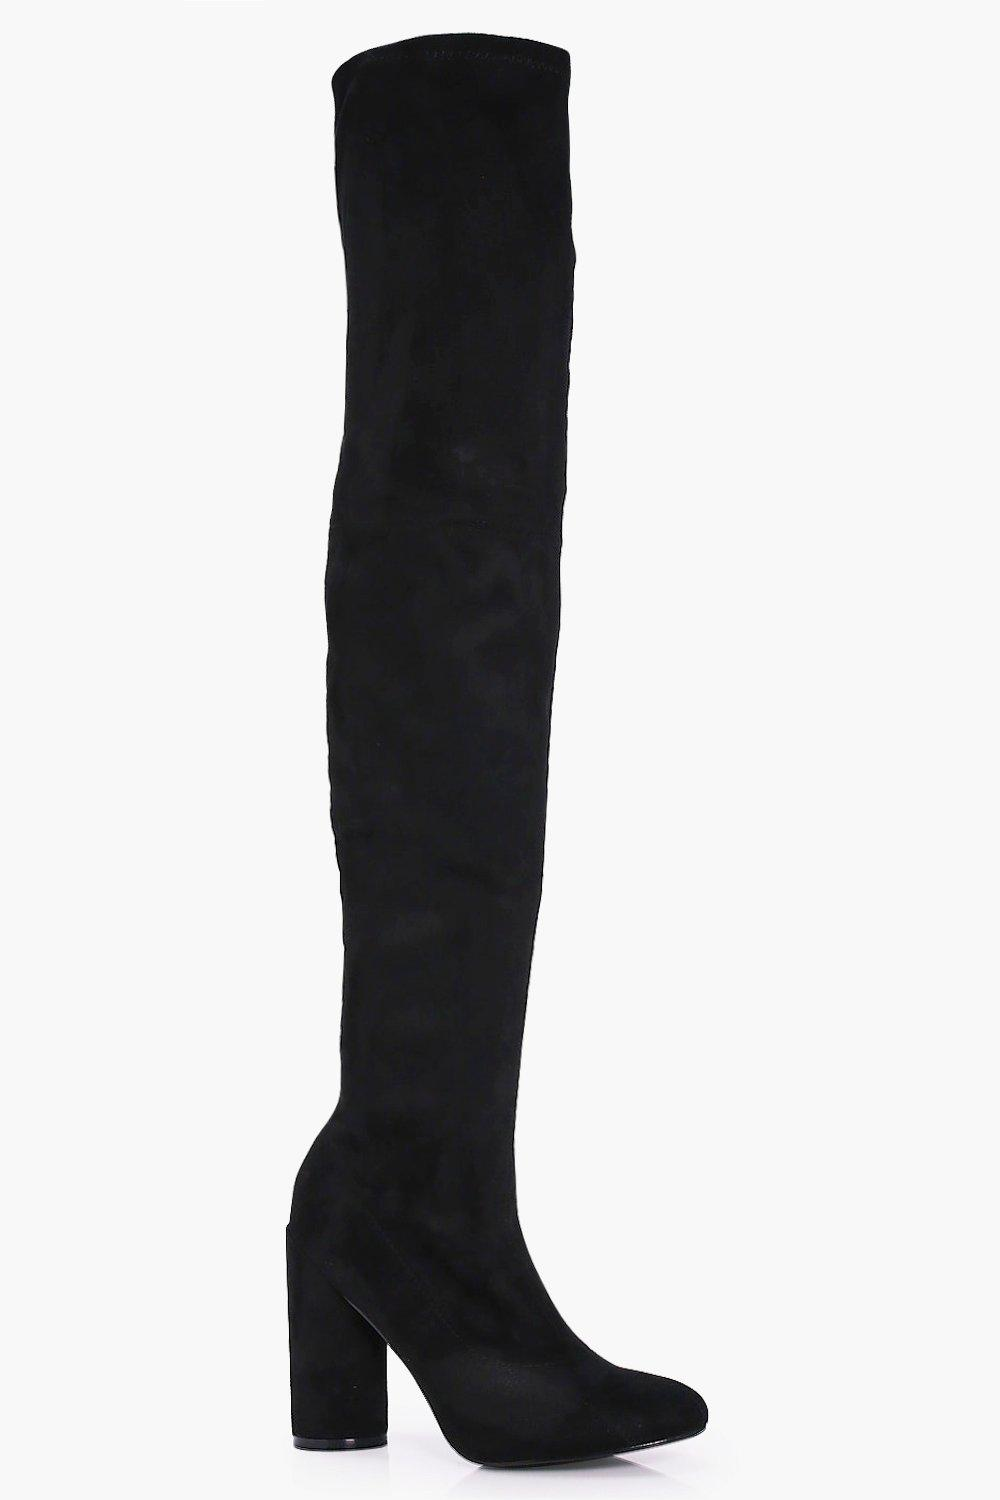 Tilly Round Heel Over The Knee Boot